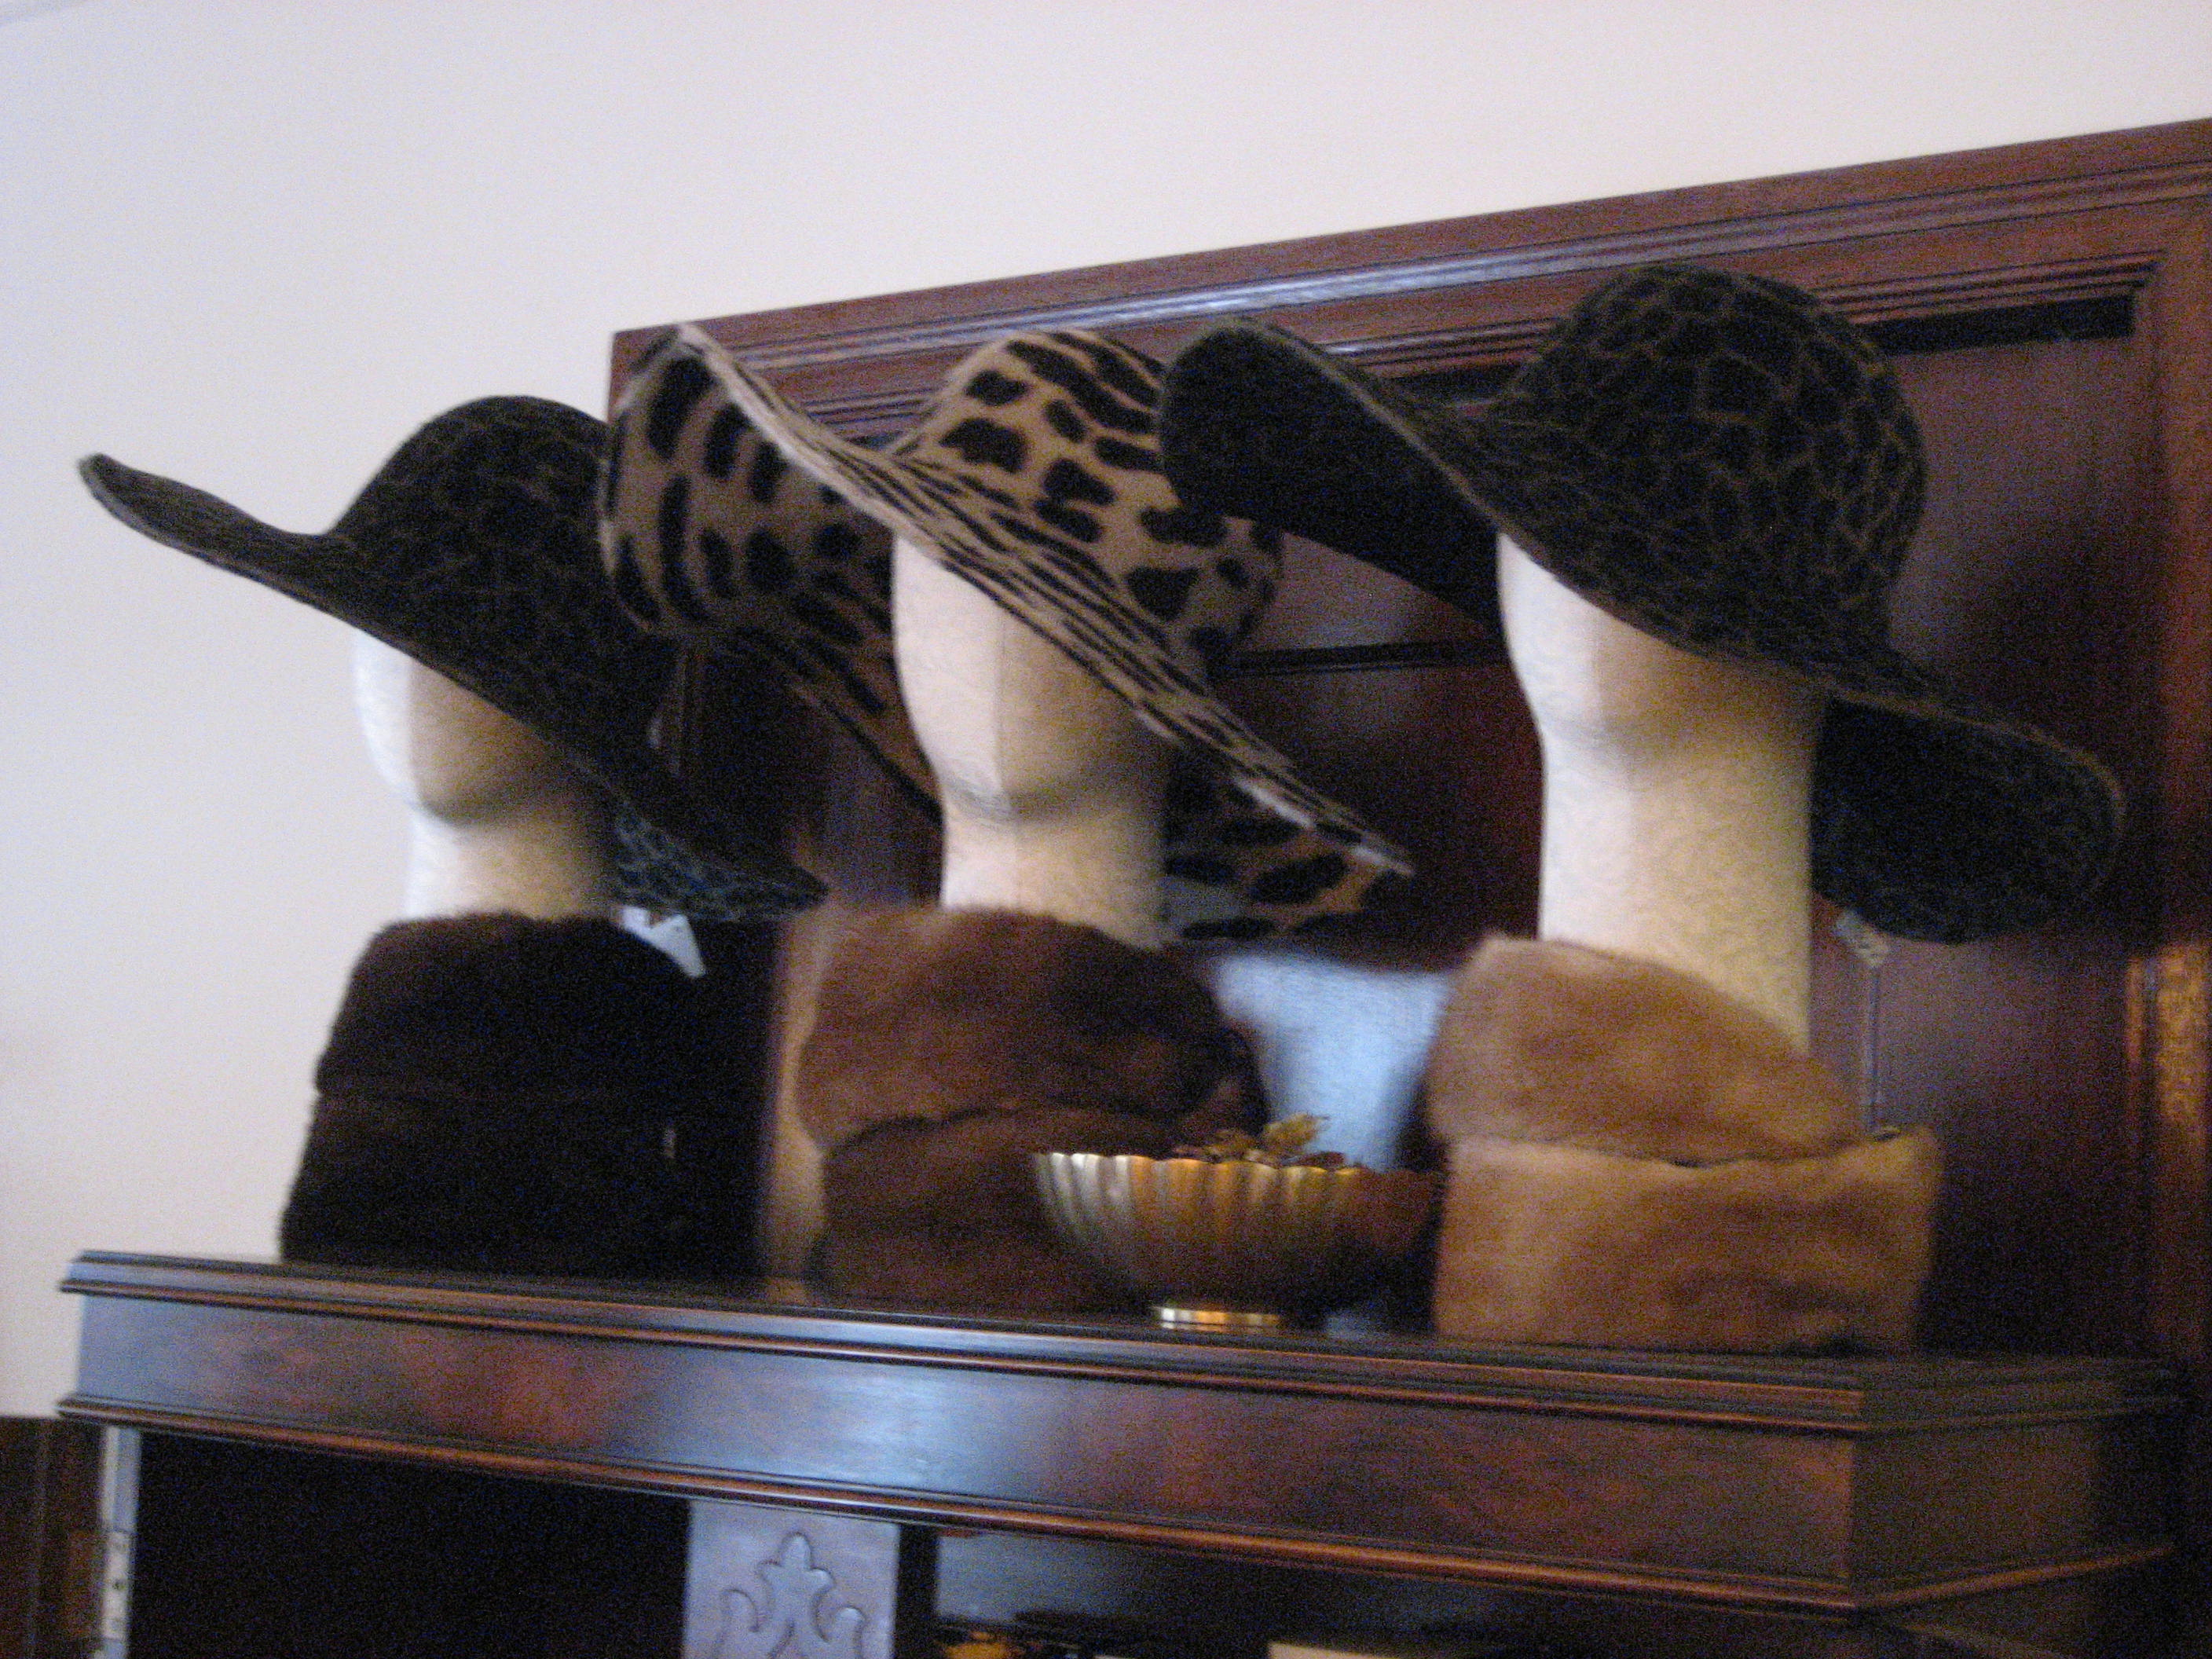 Hats, hats, and more hats.